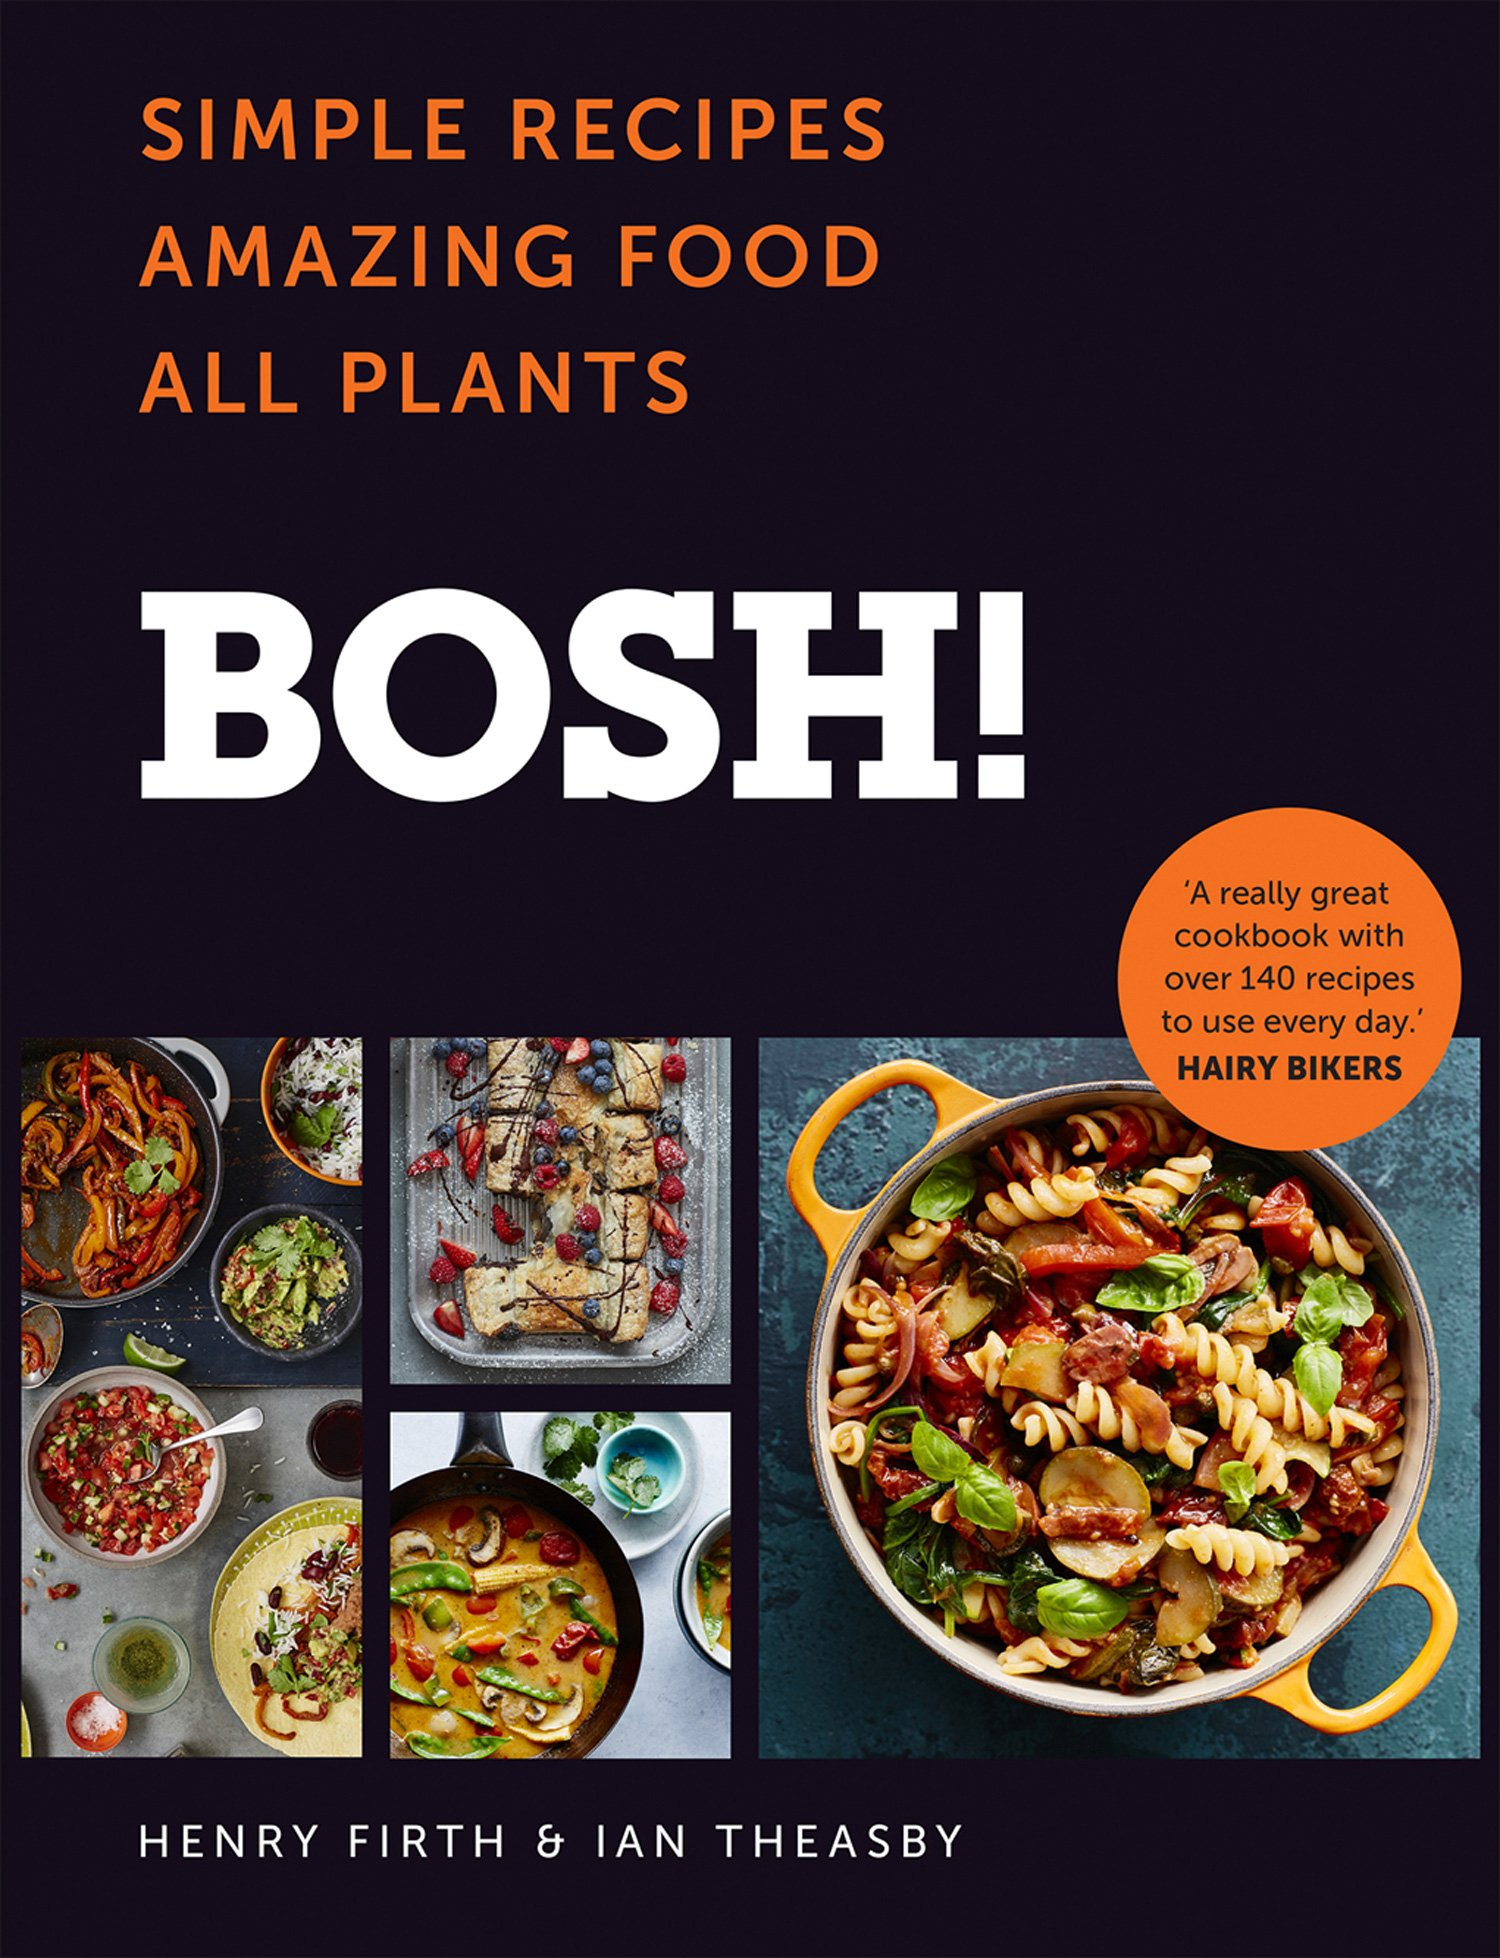 Bosh simple recipes amazing food all plants the most simple recipes amazing food all plants the most anticipated vegan cookbook of 2018 amazon henry firth ian theasby books forumfinder Images